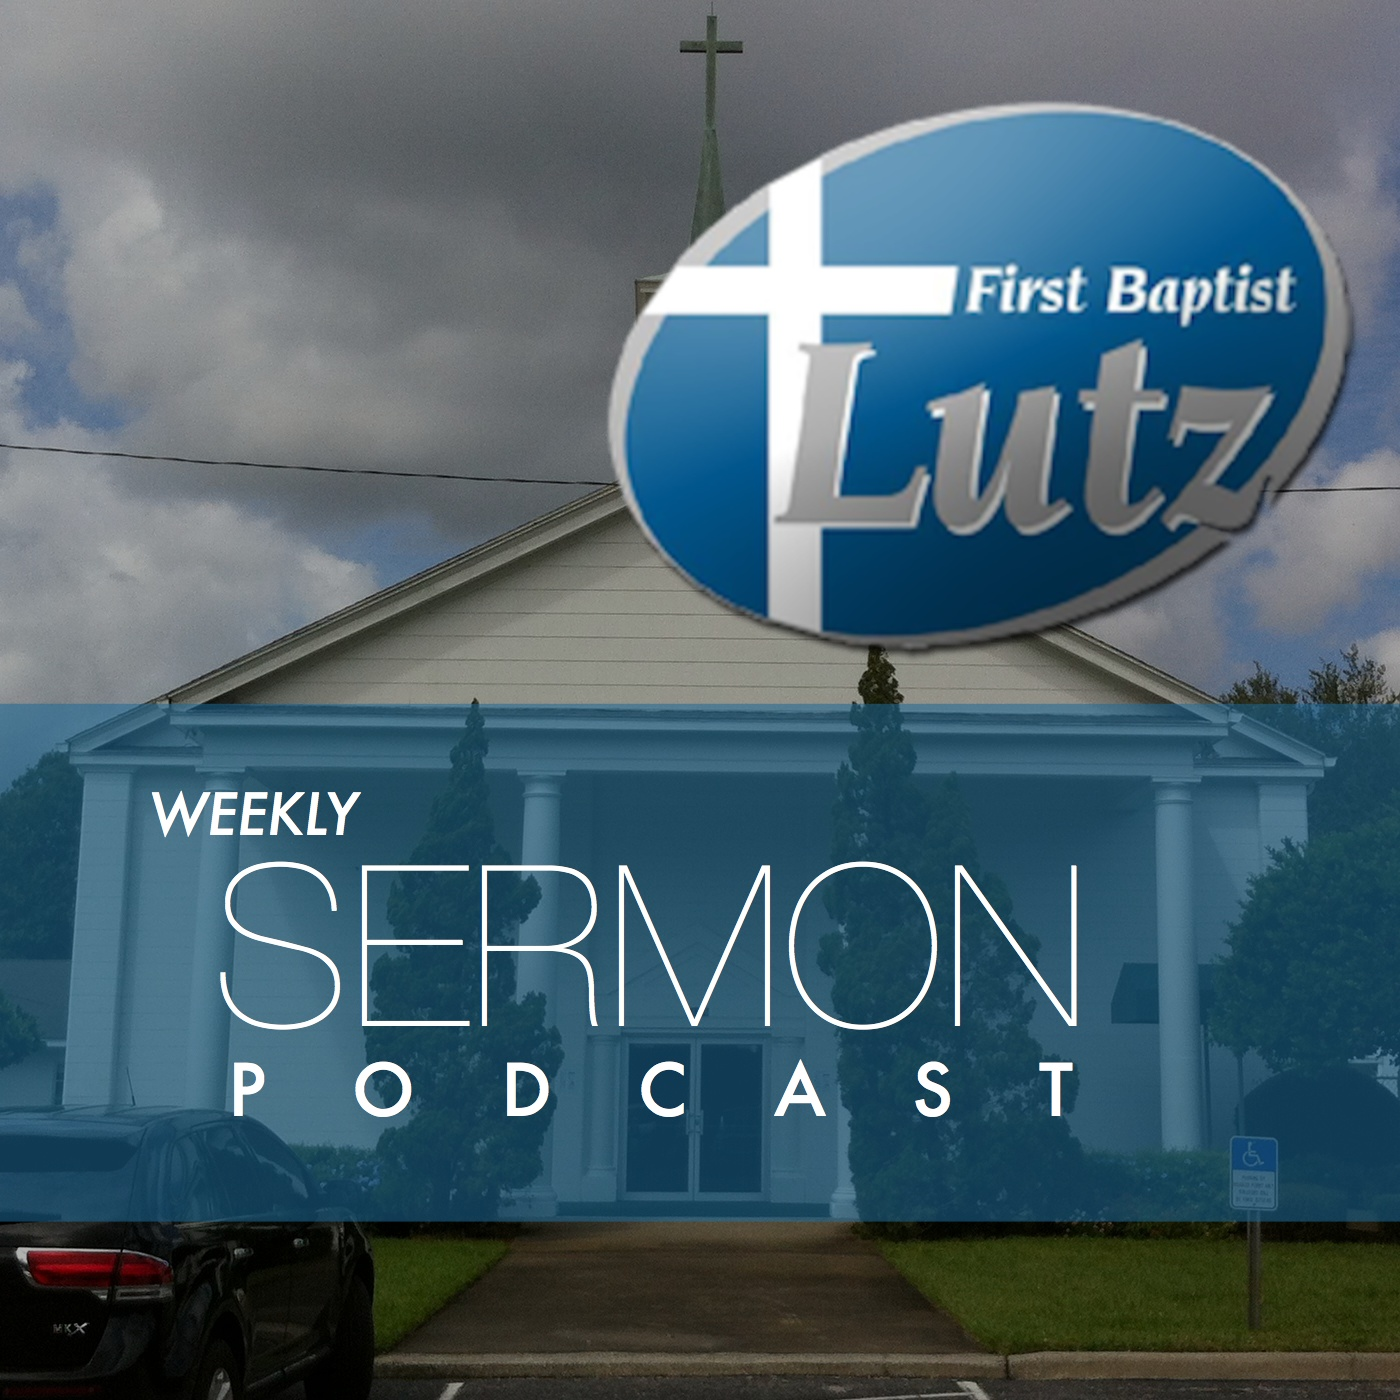 Sermon Podcast - First Baptist Church of Lutz